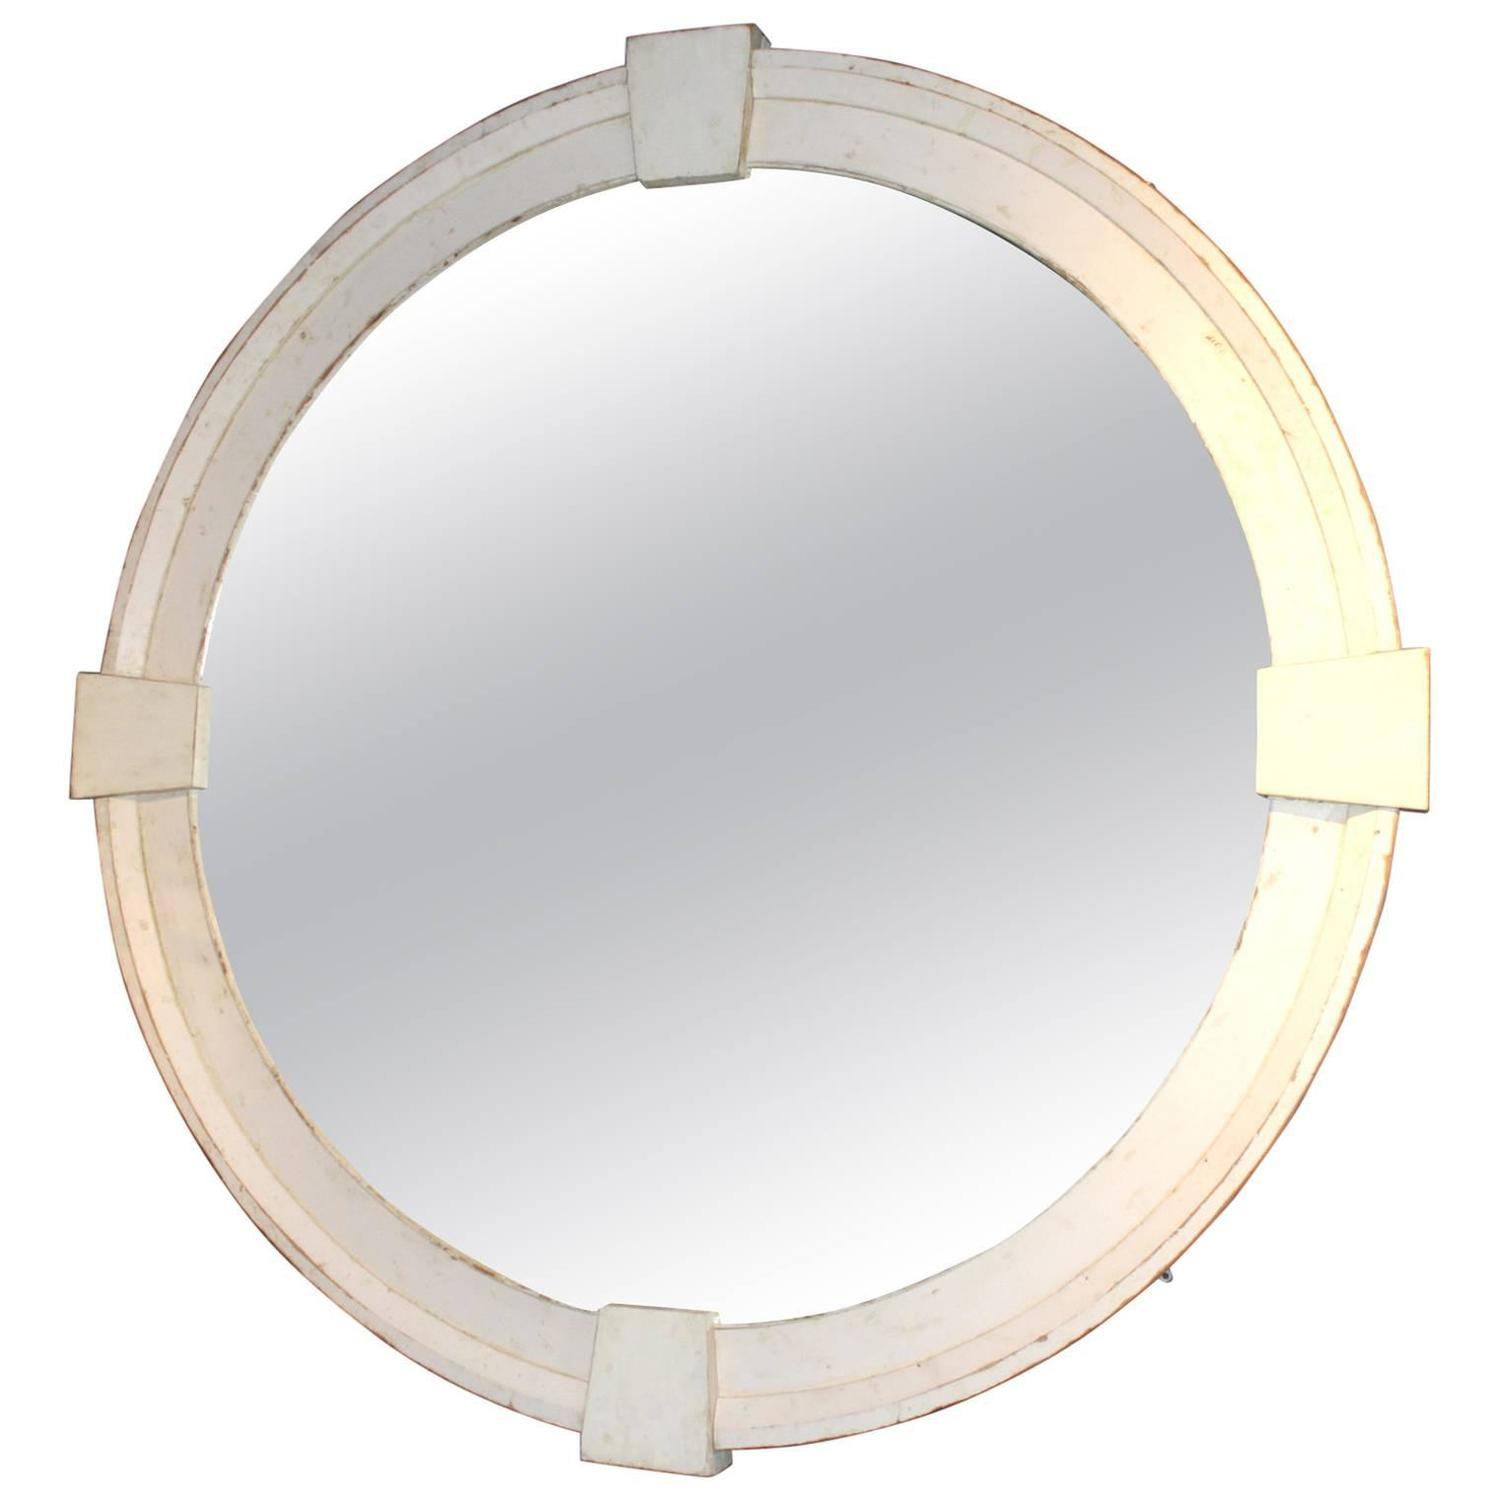 Monumental Round Wood Framed Mirror With Architectural: round framed mirror